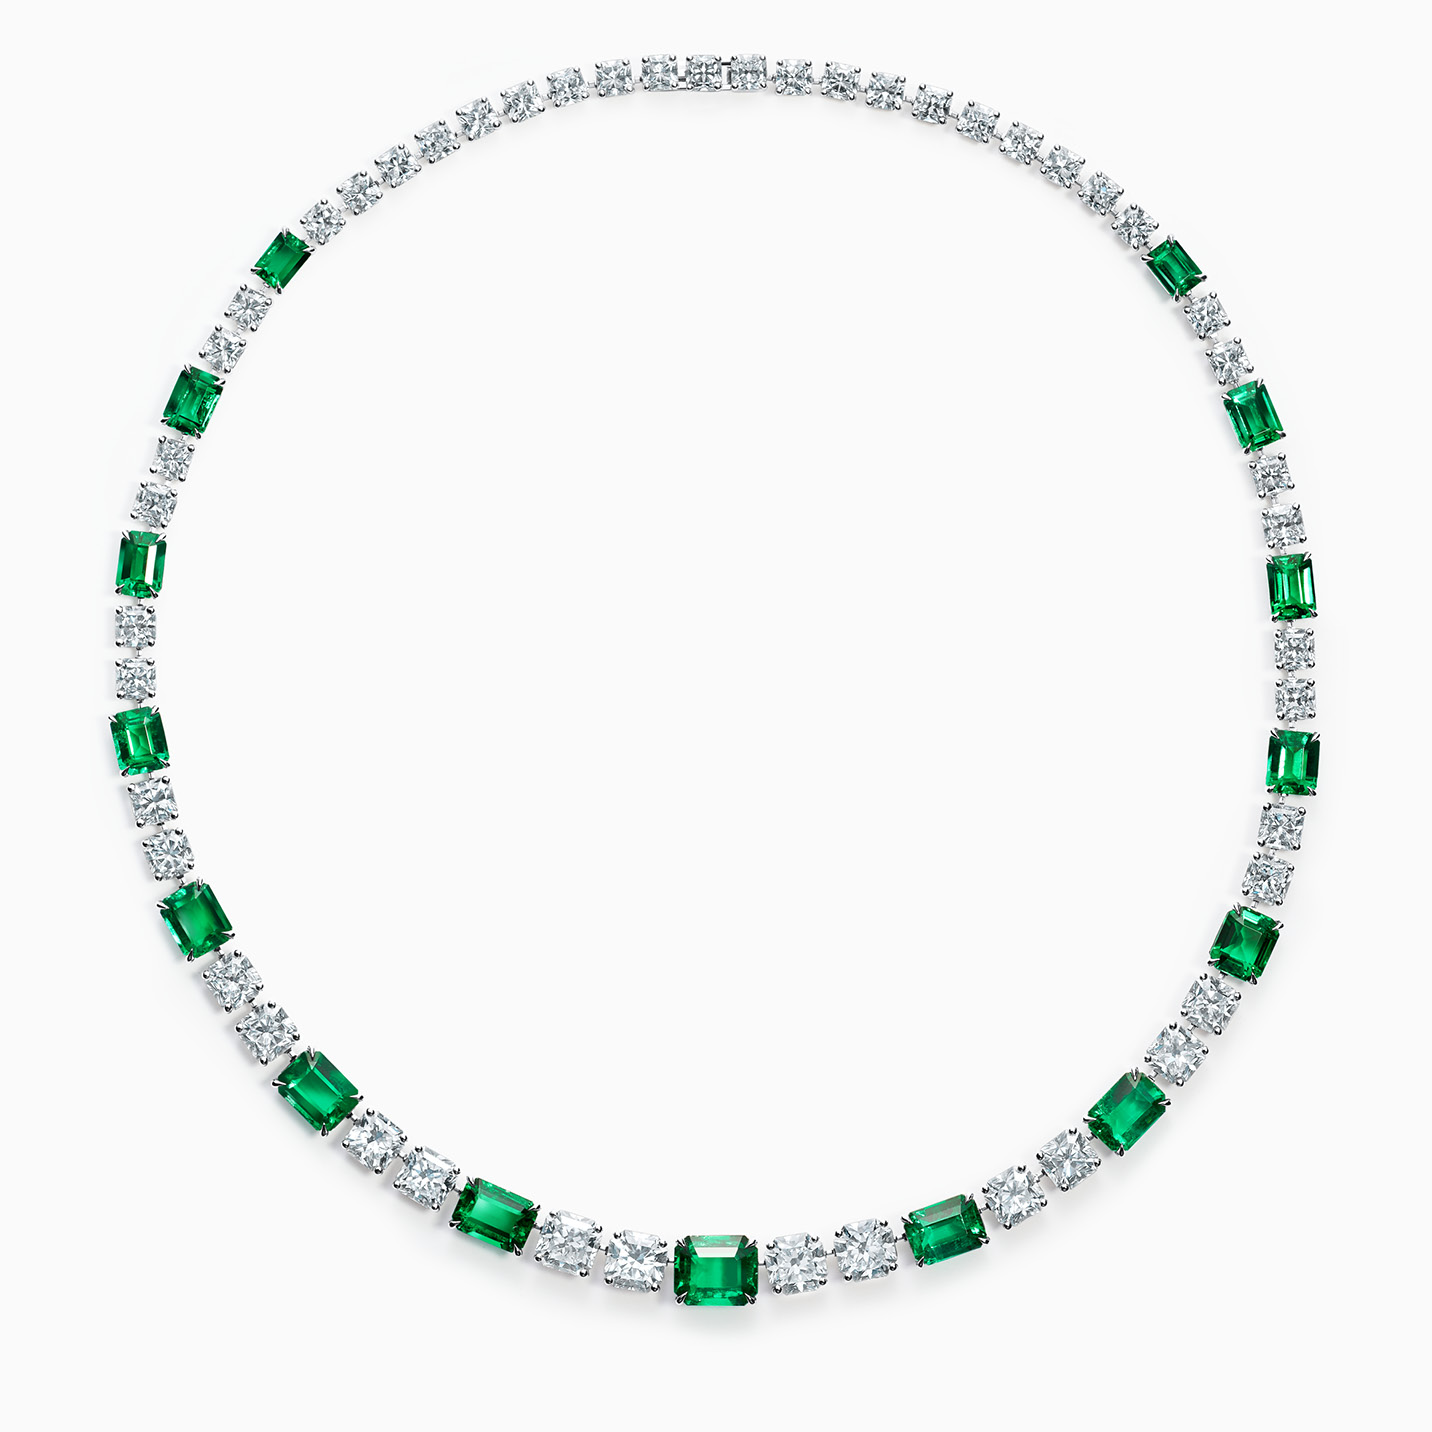 Tiffany & Co. Schlumberger®Leaves Necklace